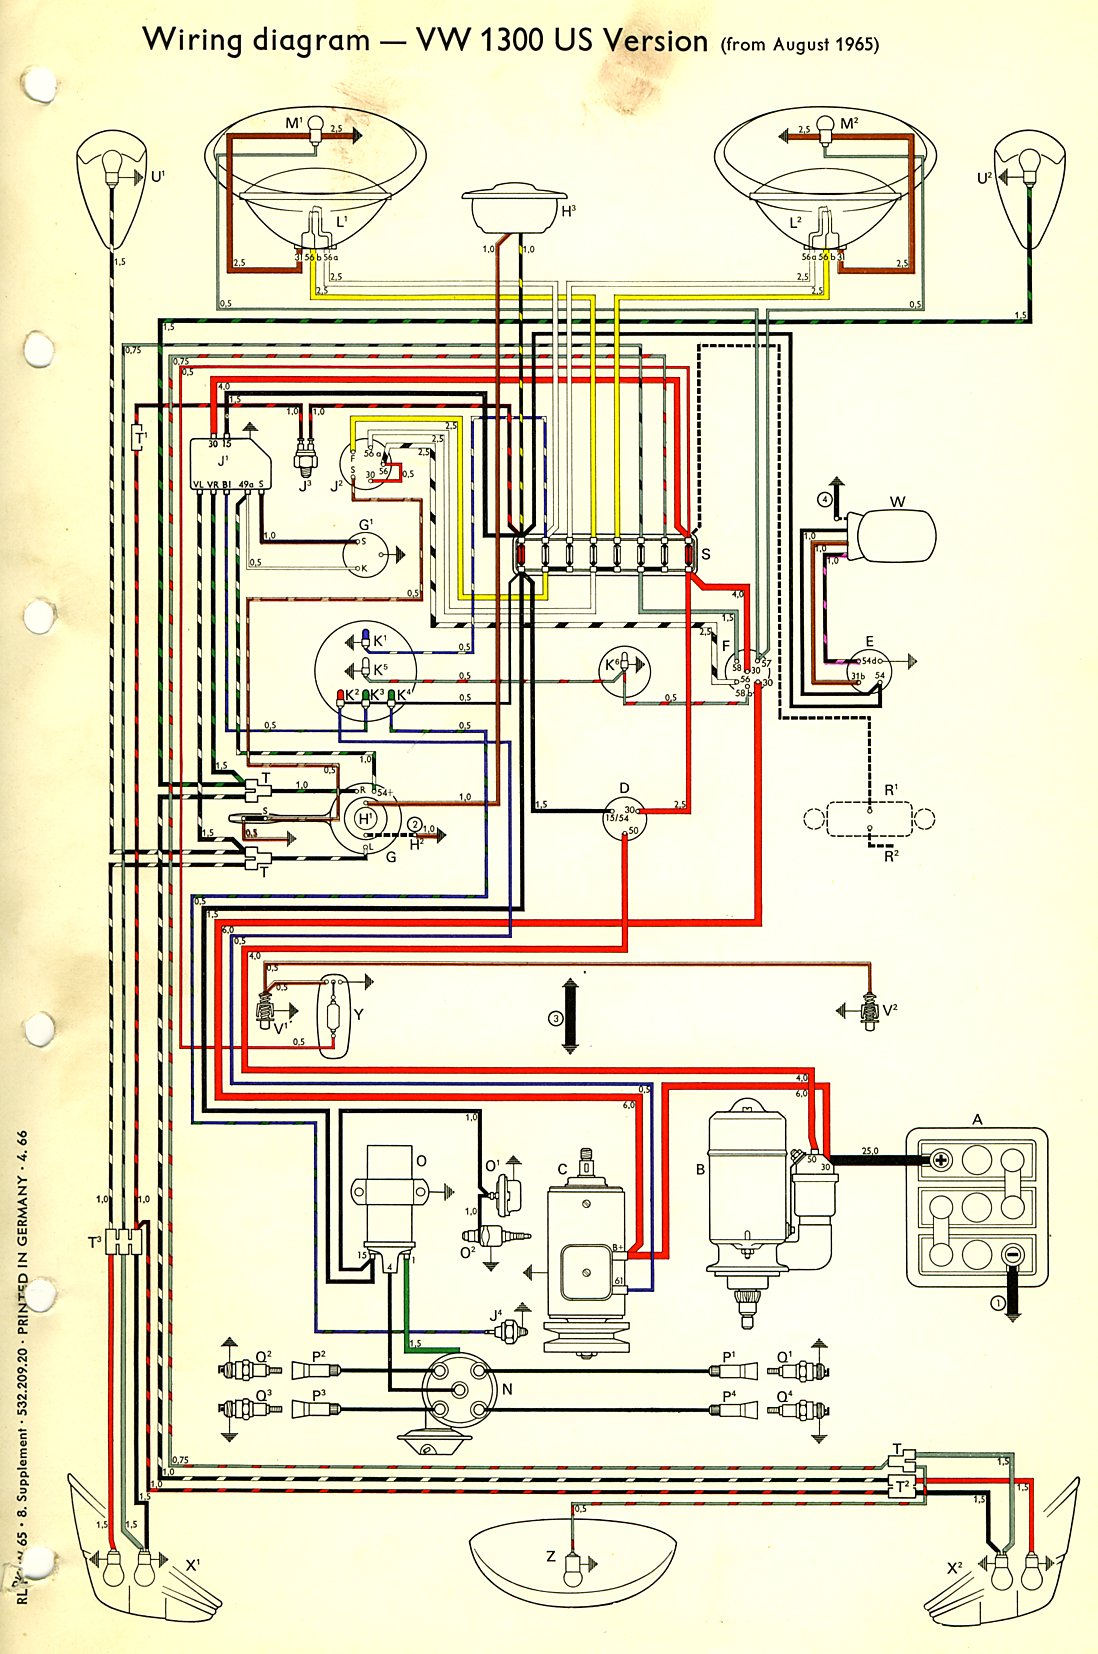 thesamba com type 1 wiring diagramsVw Beetle Wiring Diagram Wiring Diagram Update Additionally 1972 Vw #3